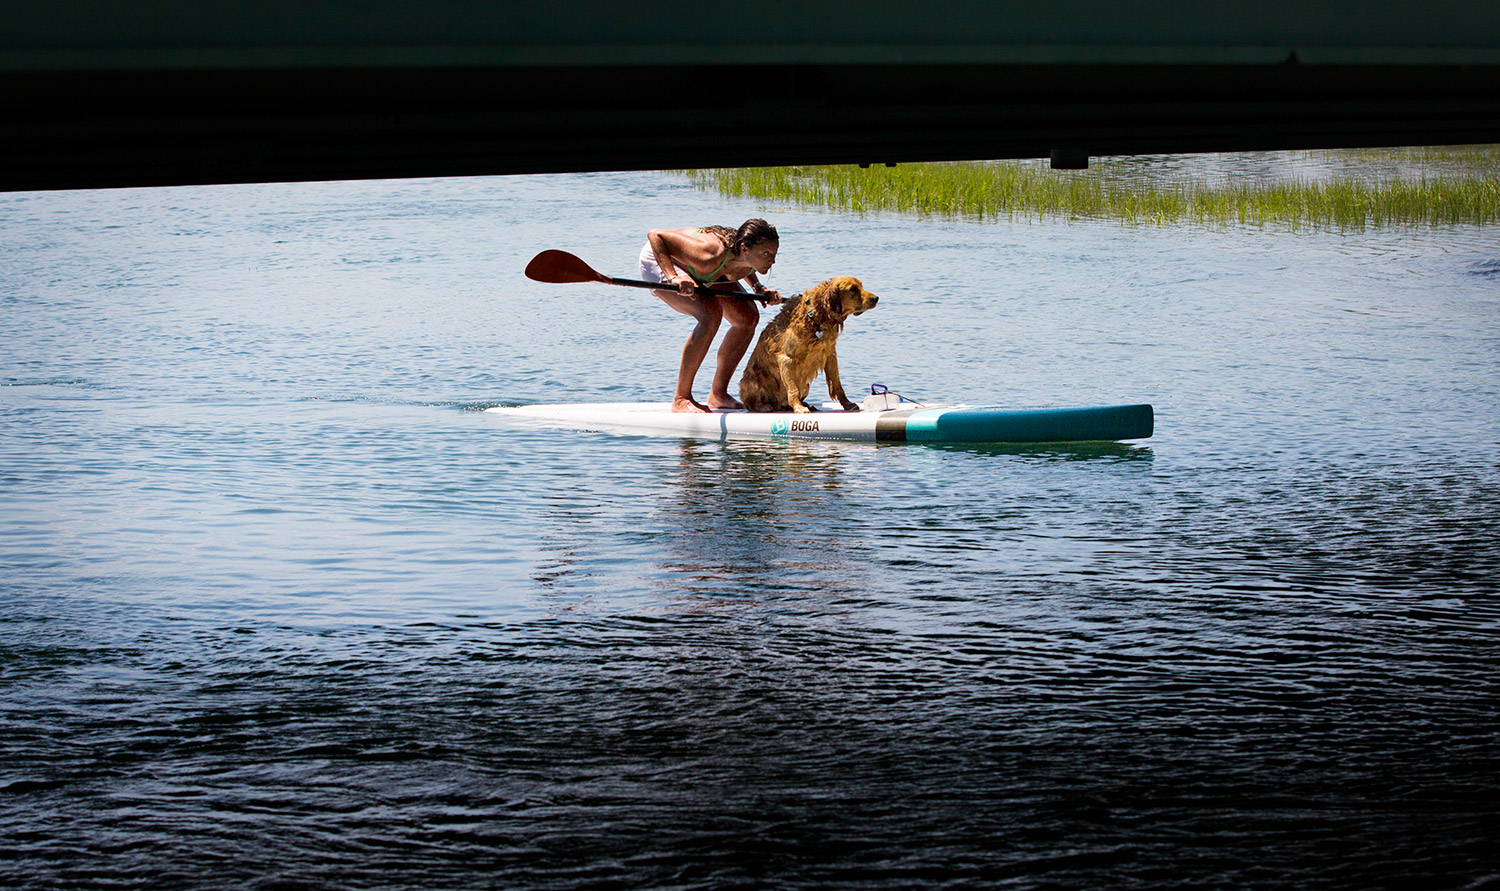 Willa Wirth of Portland ducks down while crossing under the Route 77 bridge in Scarborough on Friday while paddleboarding with her training partner, Oliver. Wirth was training for a paddleboarding race this weekend in New Hampshire.